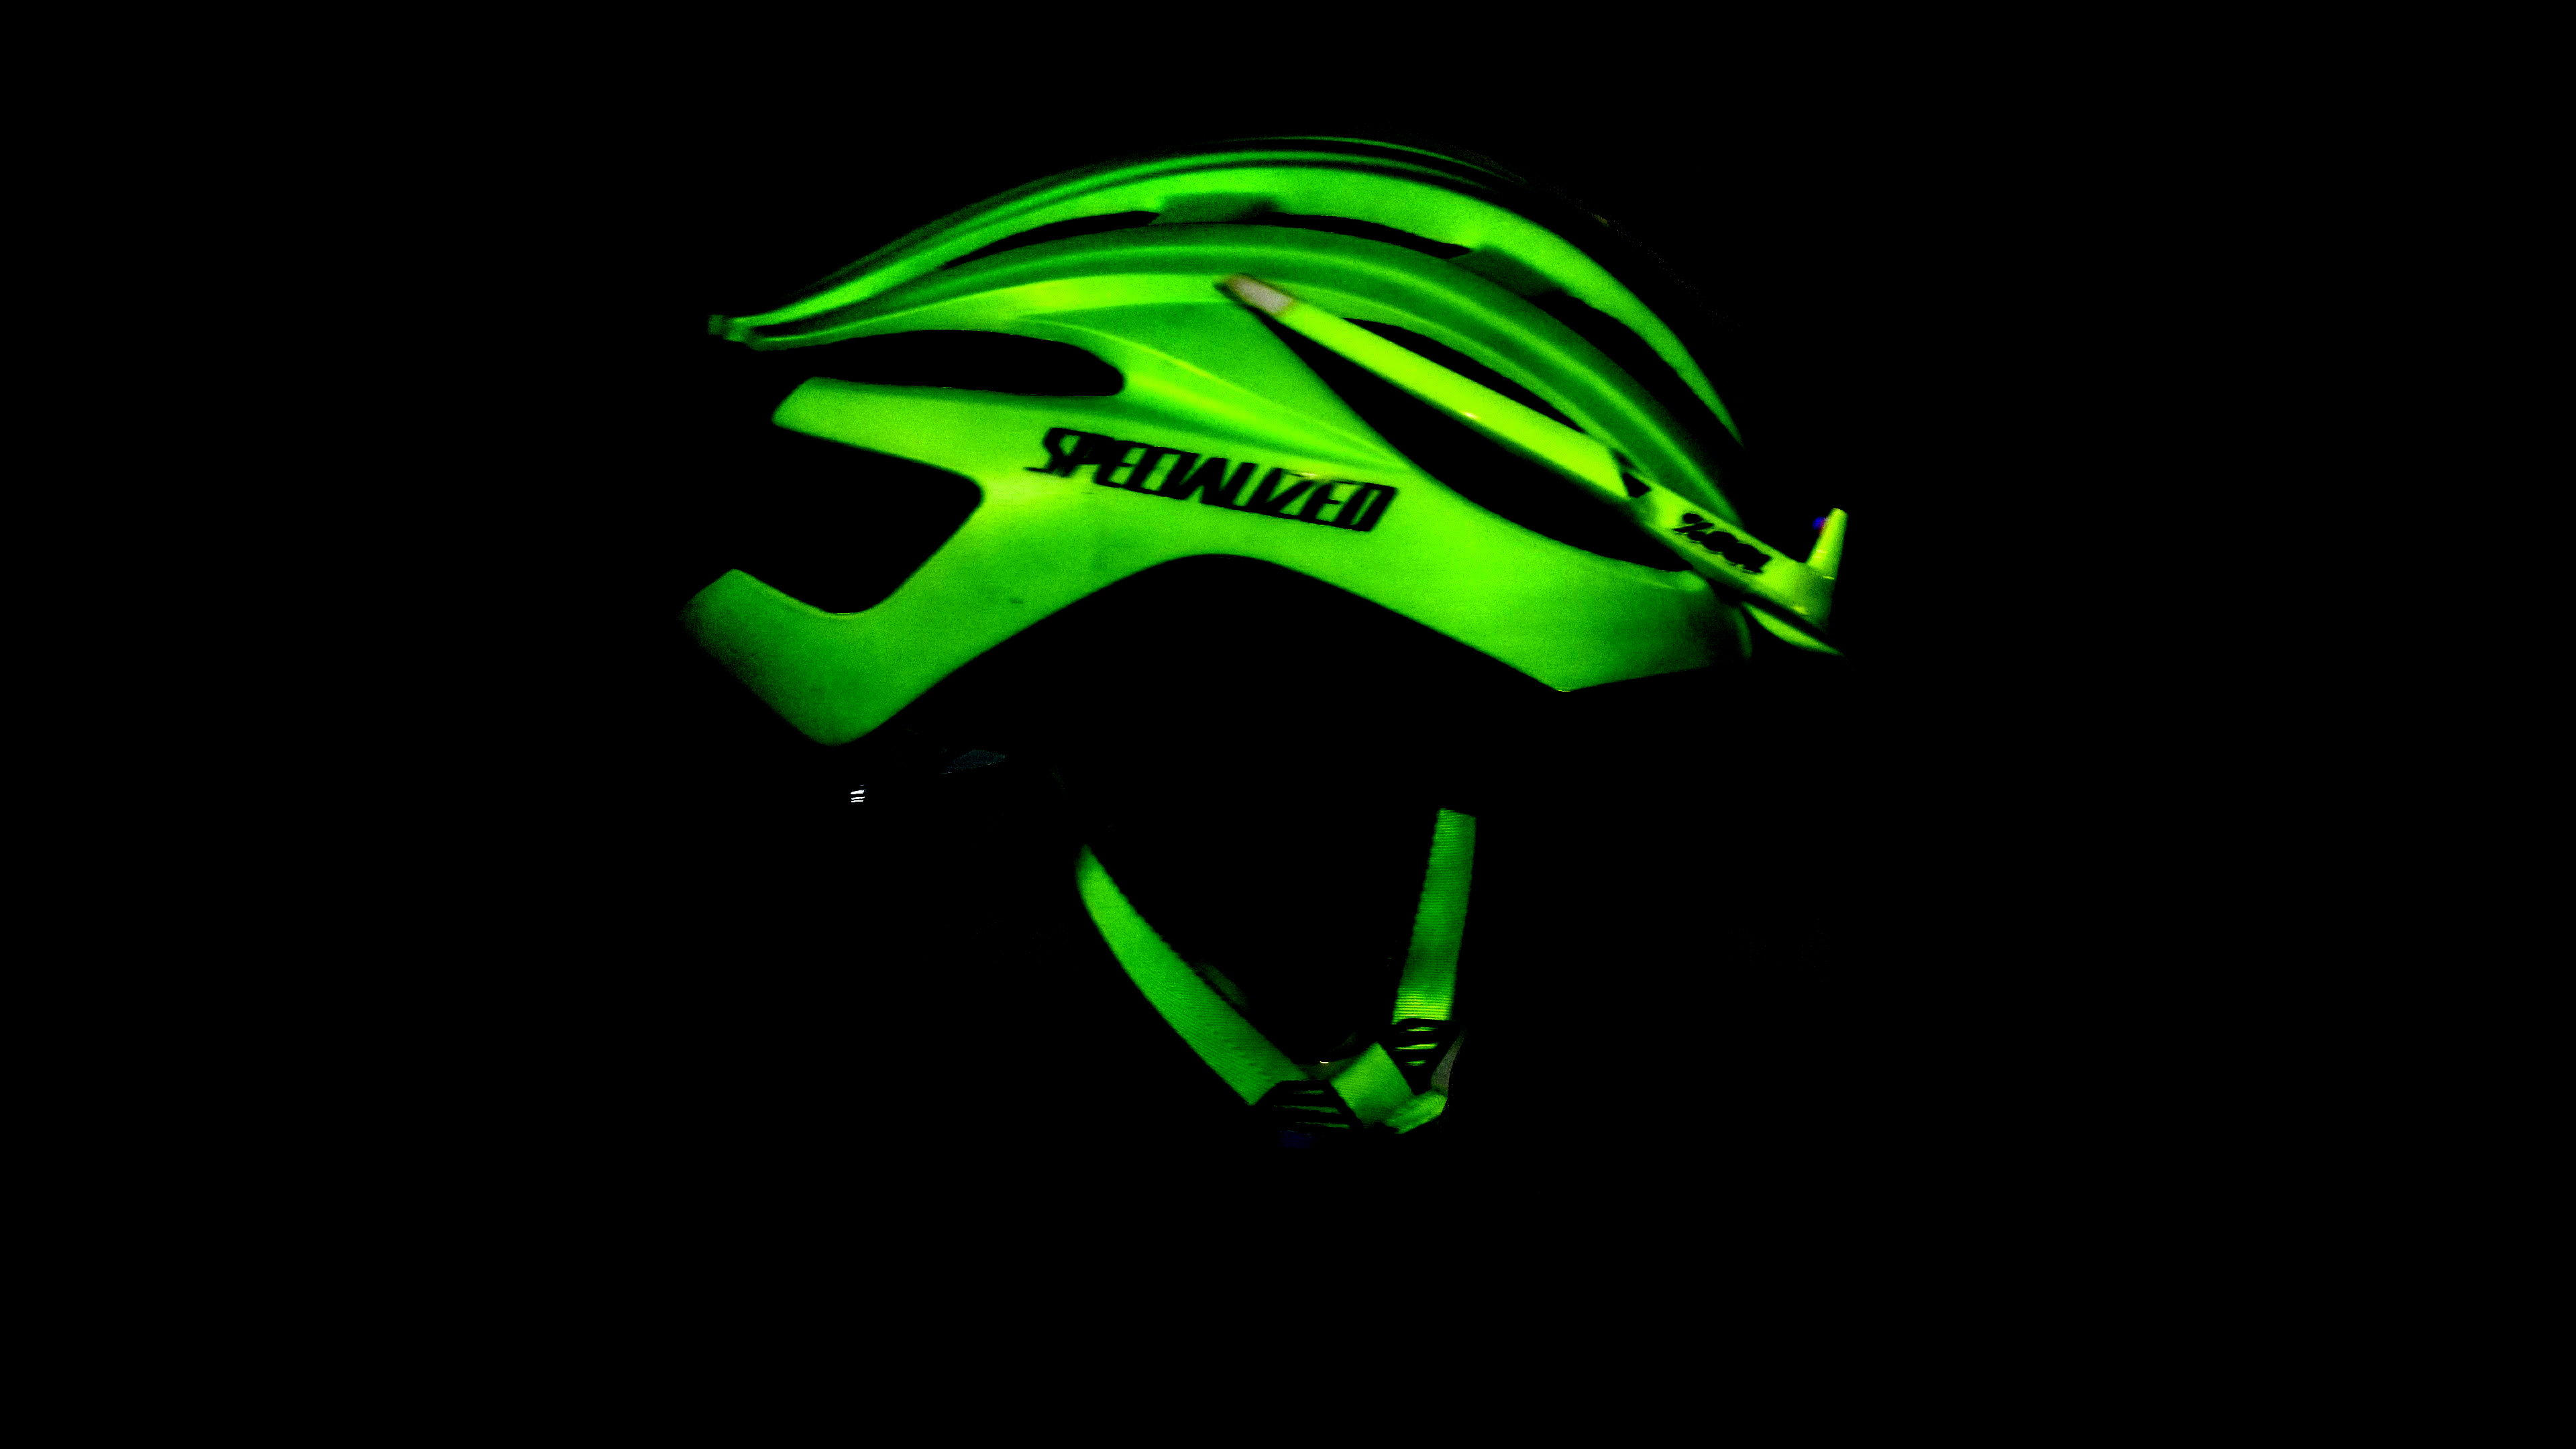 propero-neon-specialized-ride-100-percent